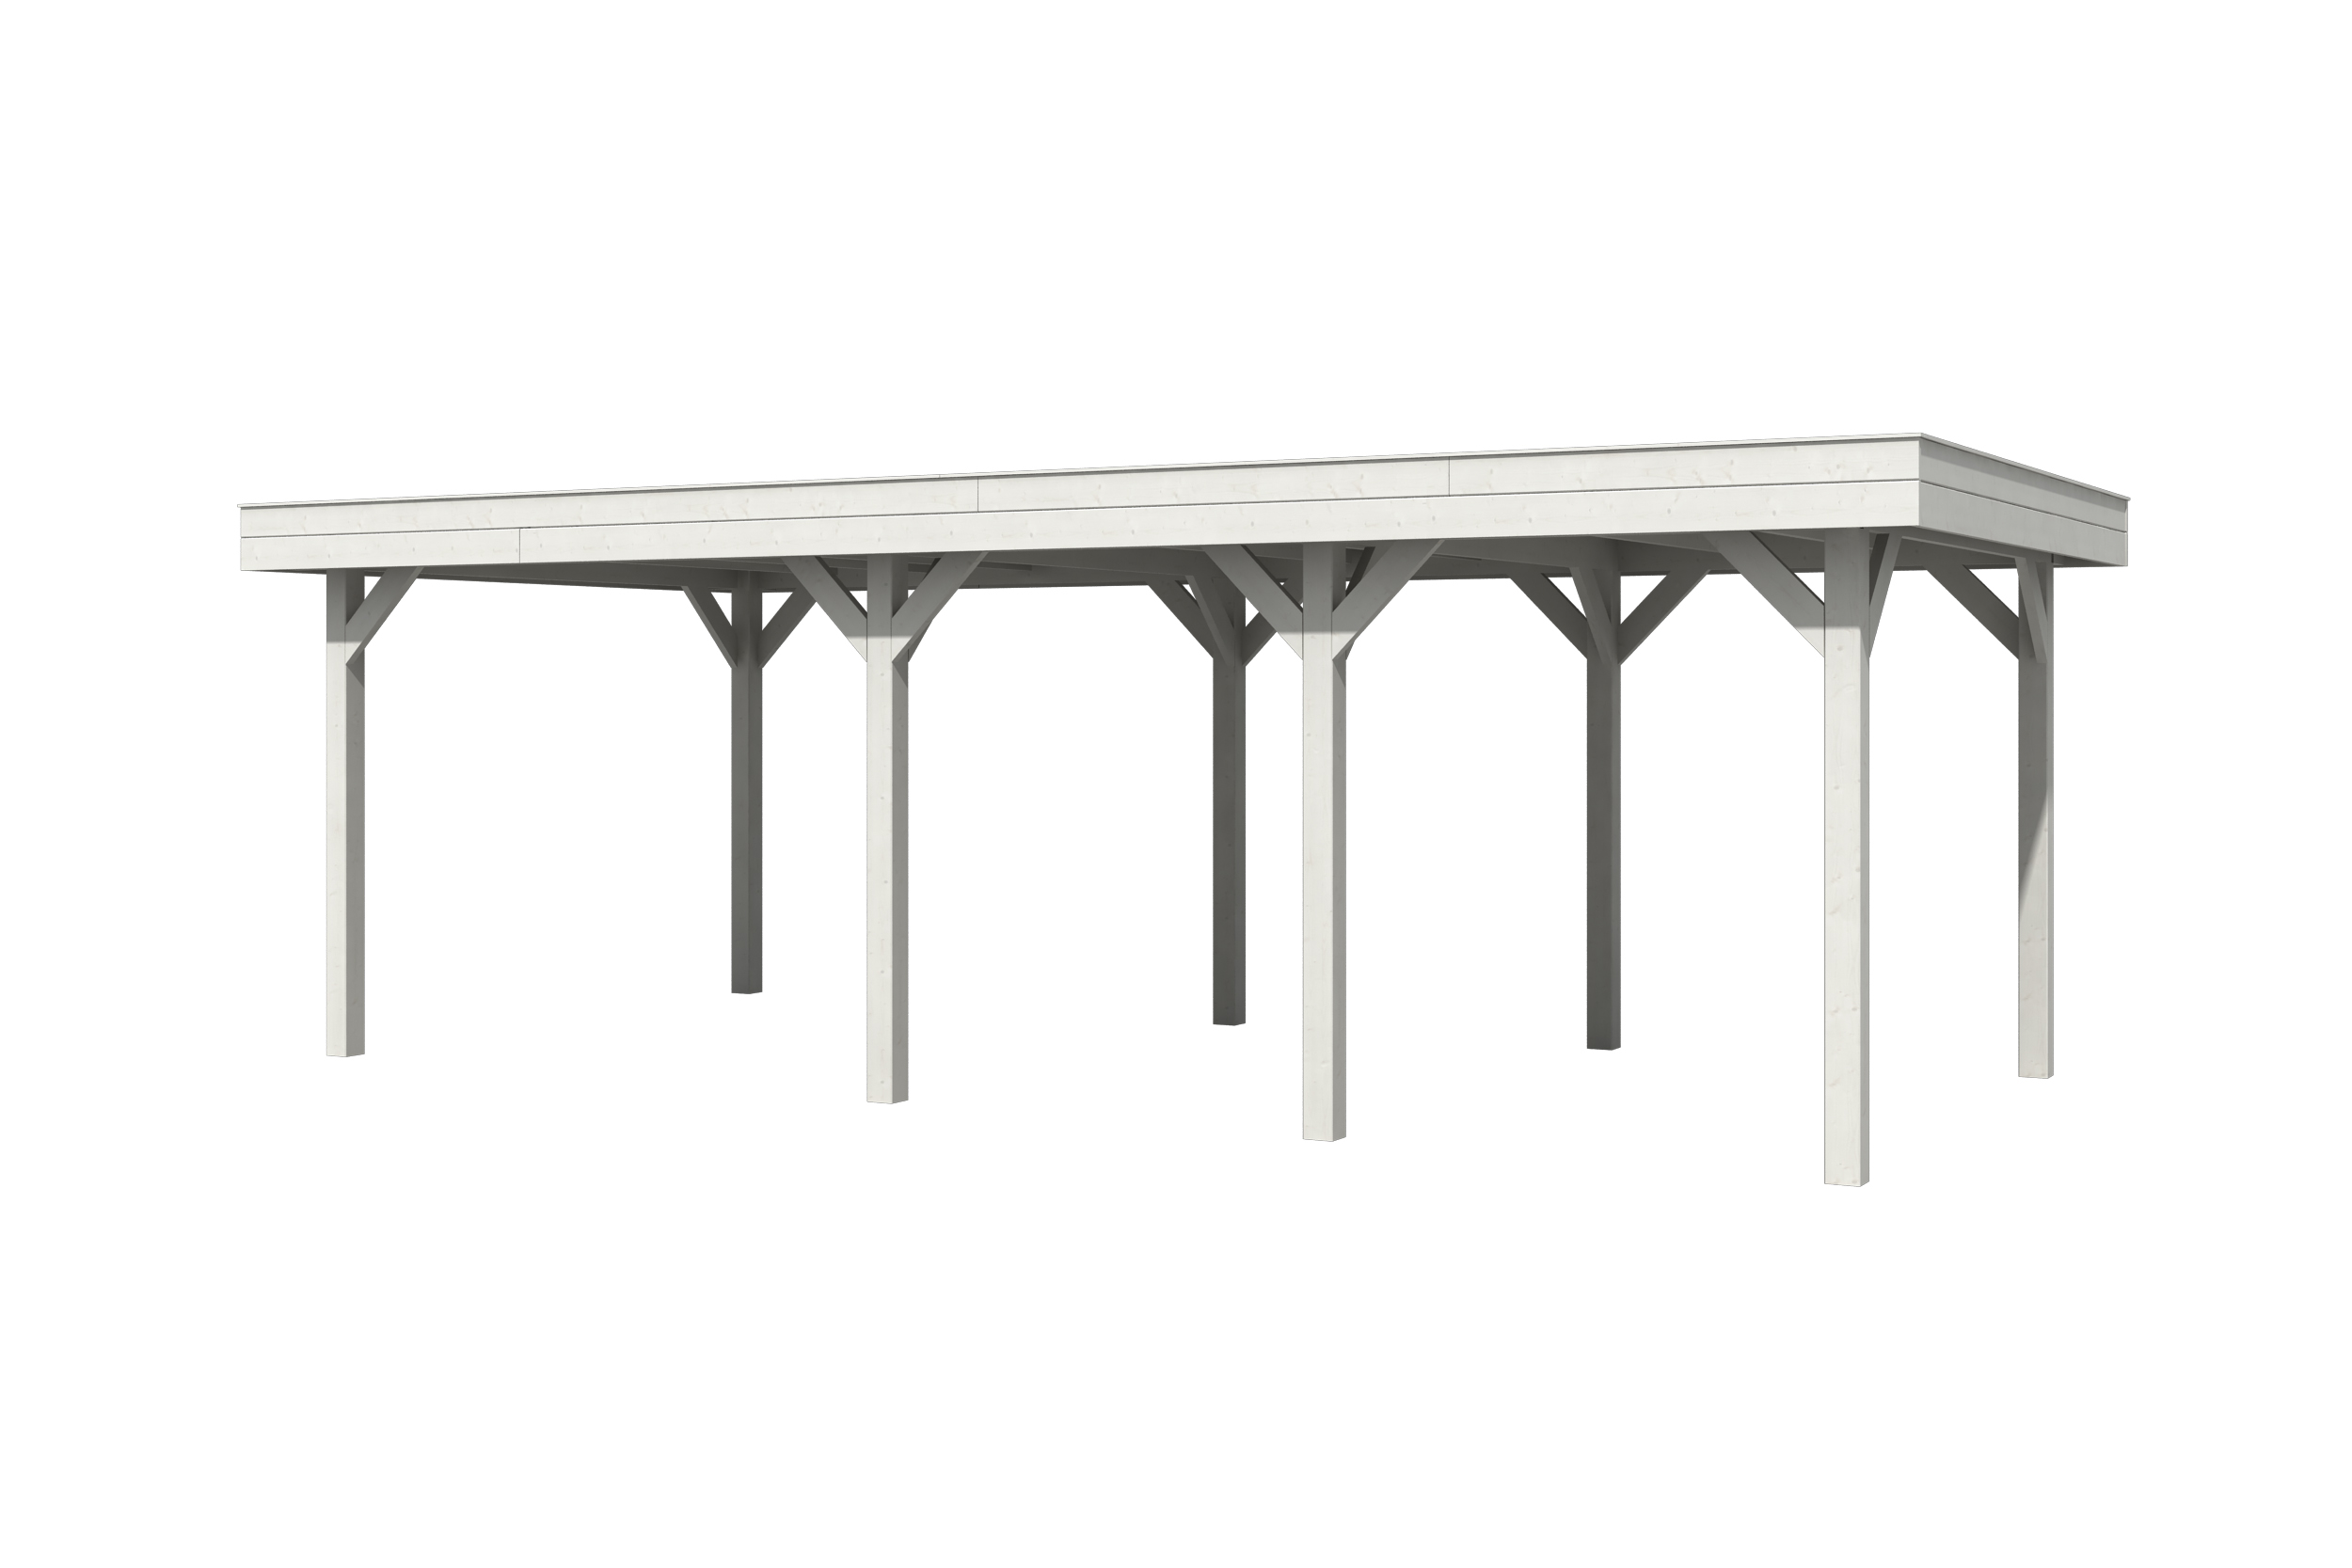 Westwood | Outdoor Living 7030 | Pearl White | 688 x 304